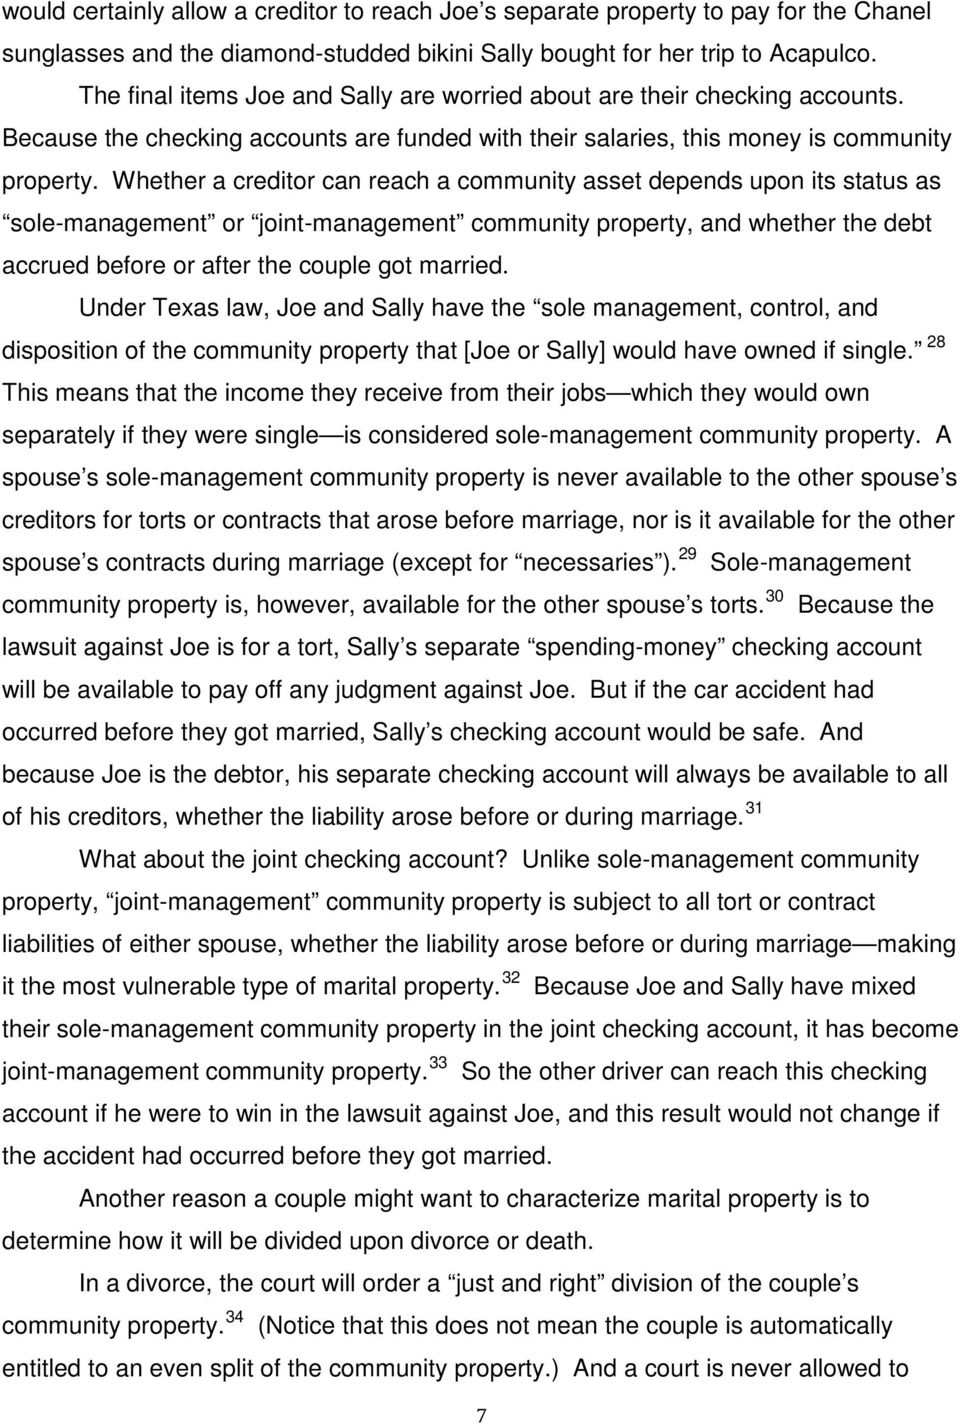 Whether a creditor can reach a community asset depends upon its status as sole-management or joint-management community property, and whether the debt accrued before or after the couple got married.